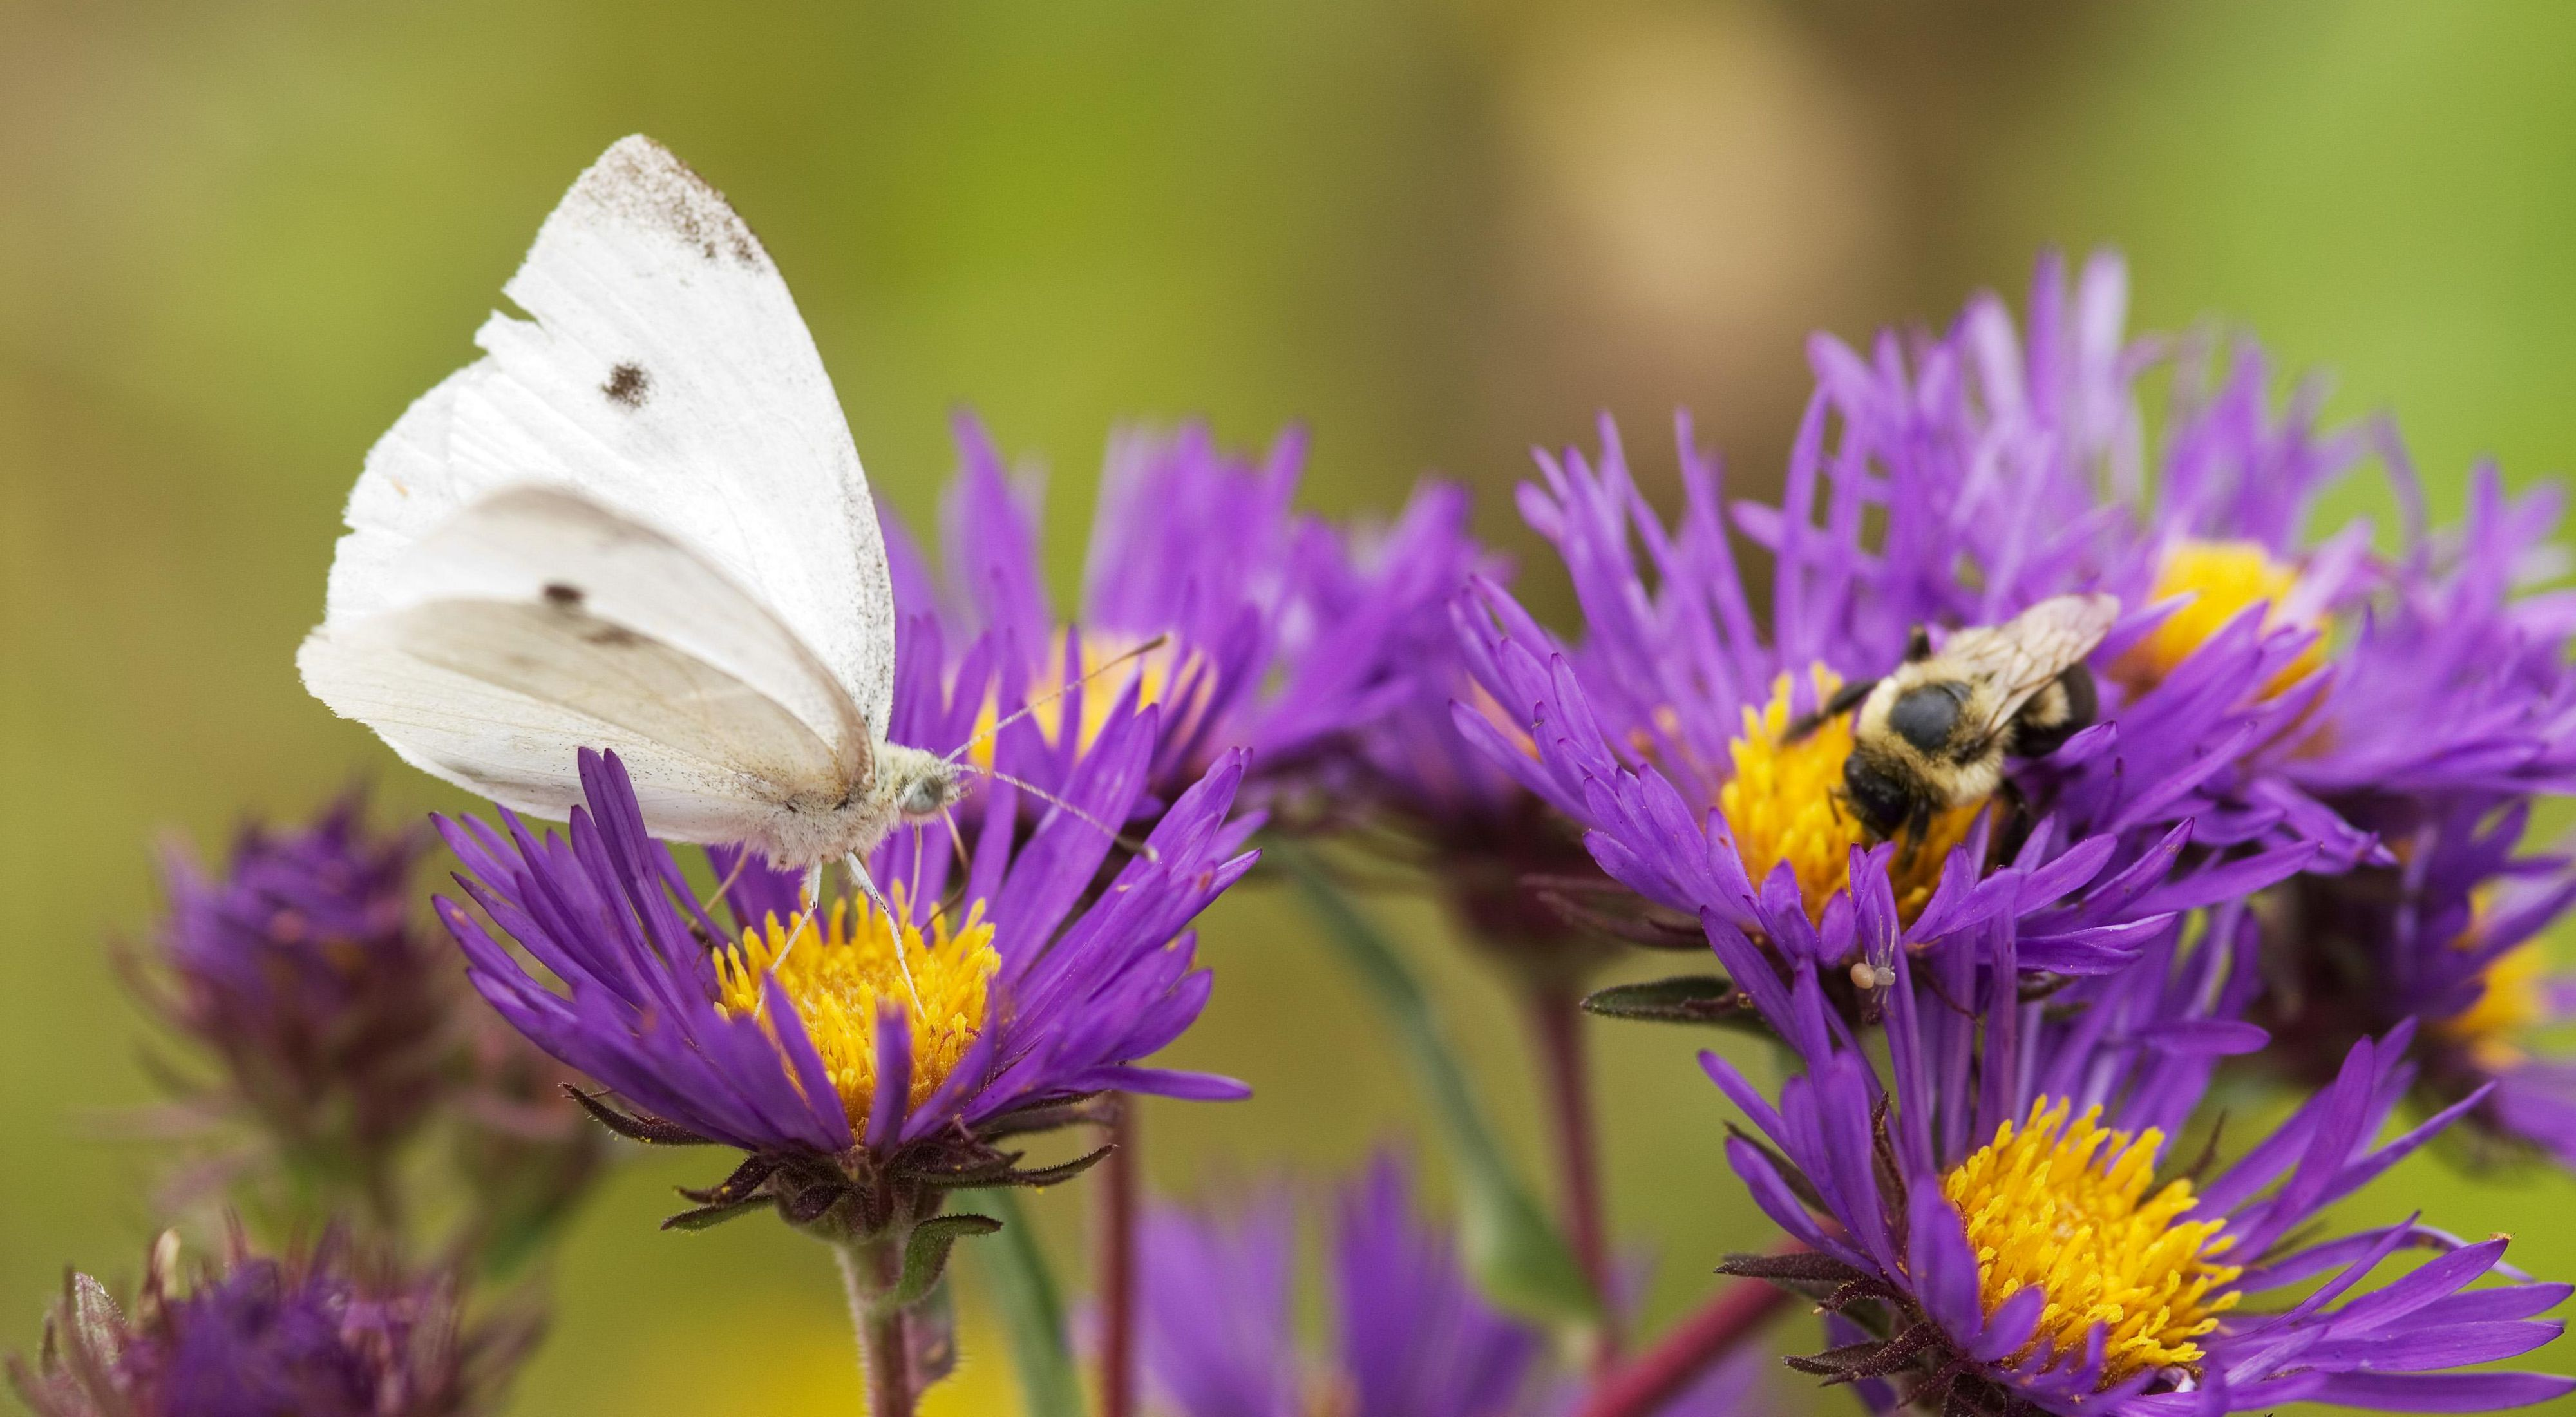 A white butterfly and a bumblebee on purple flowers.